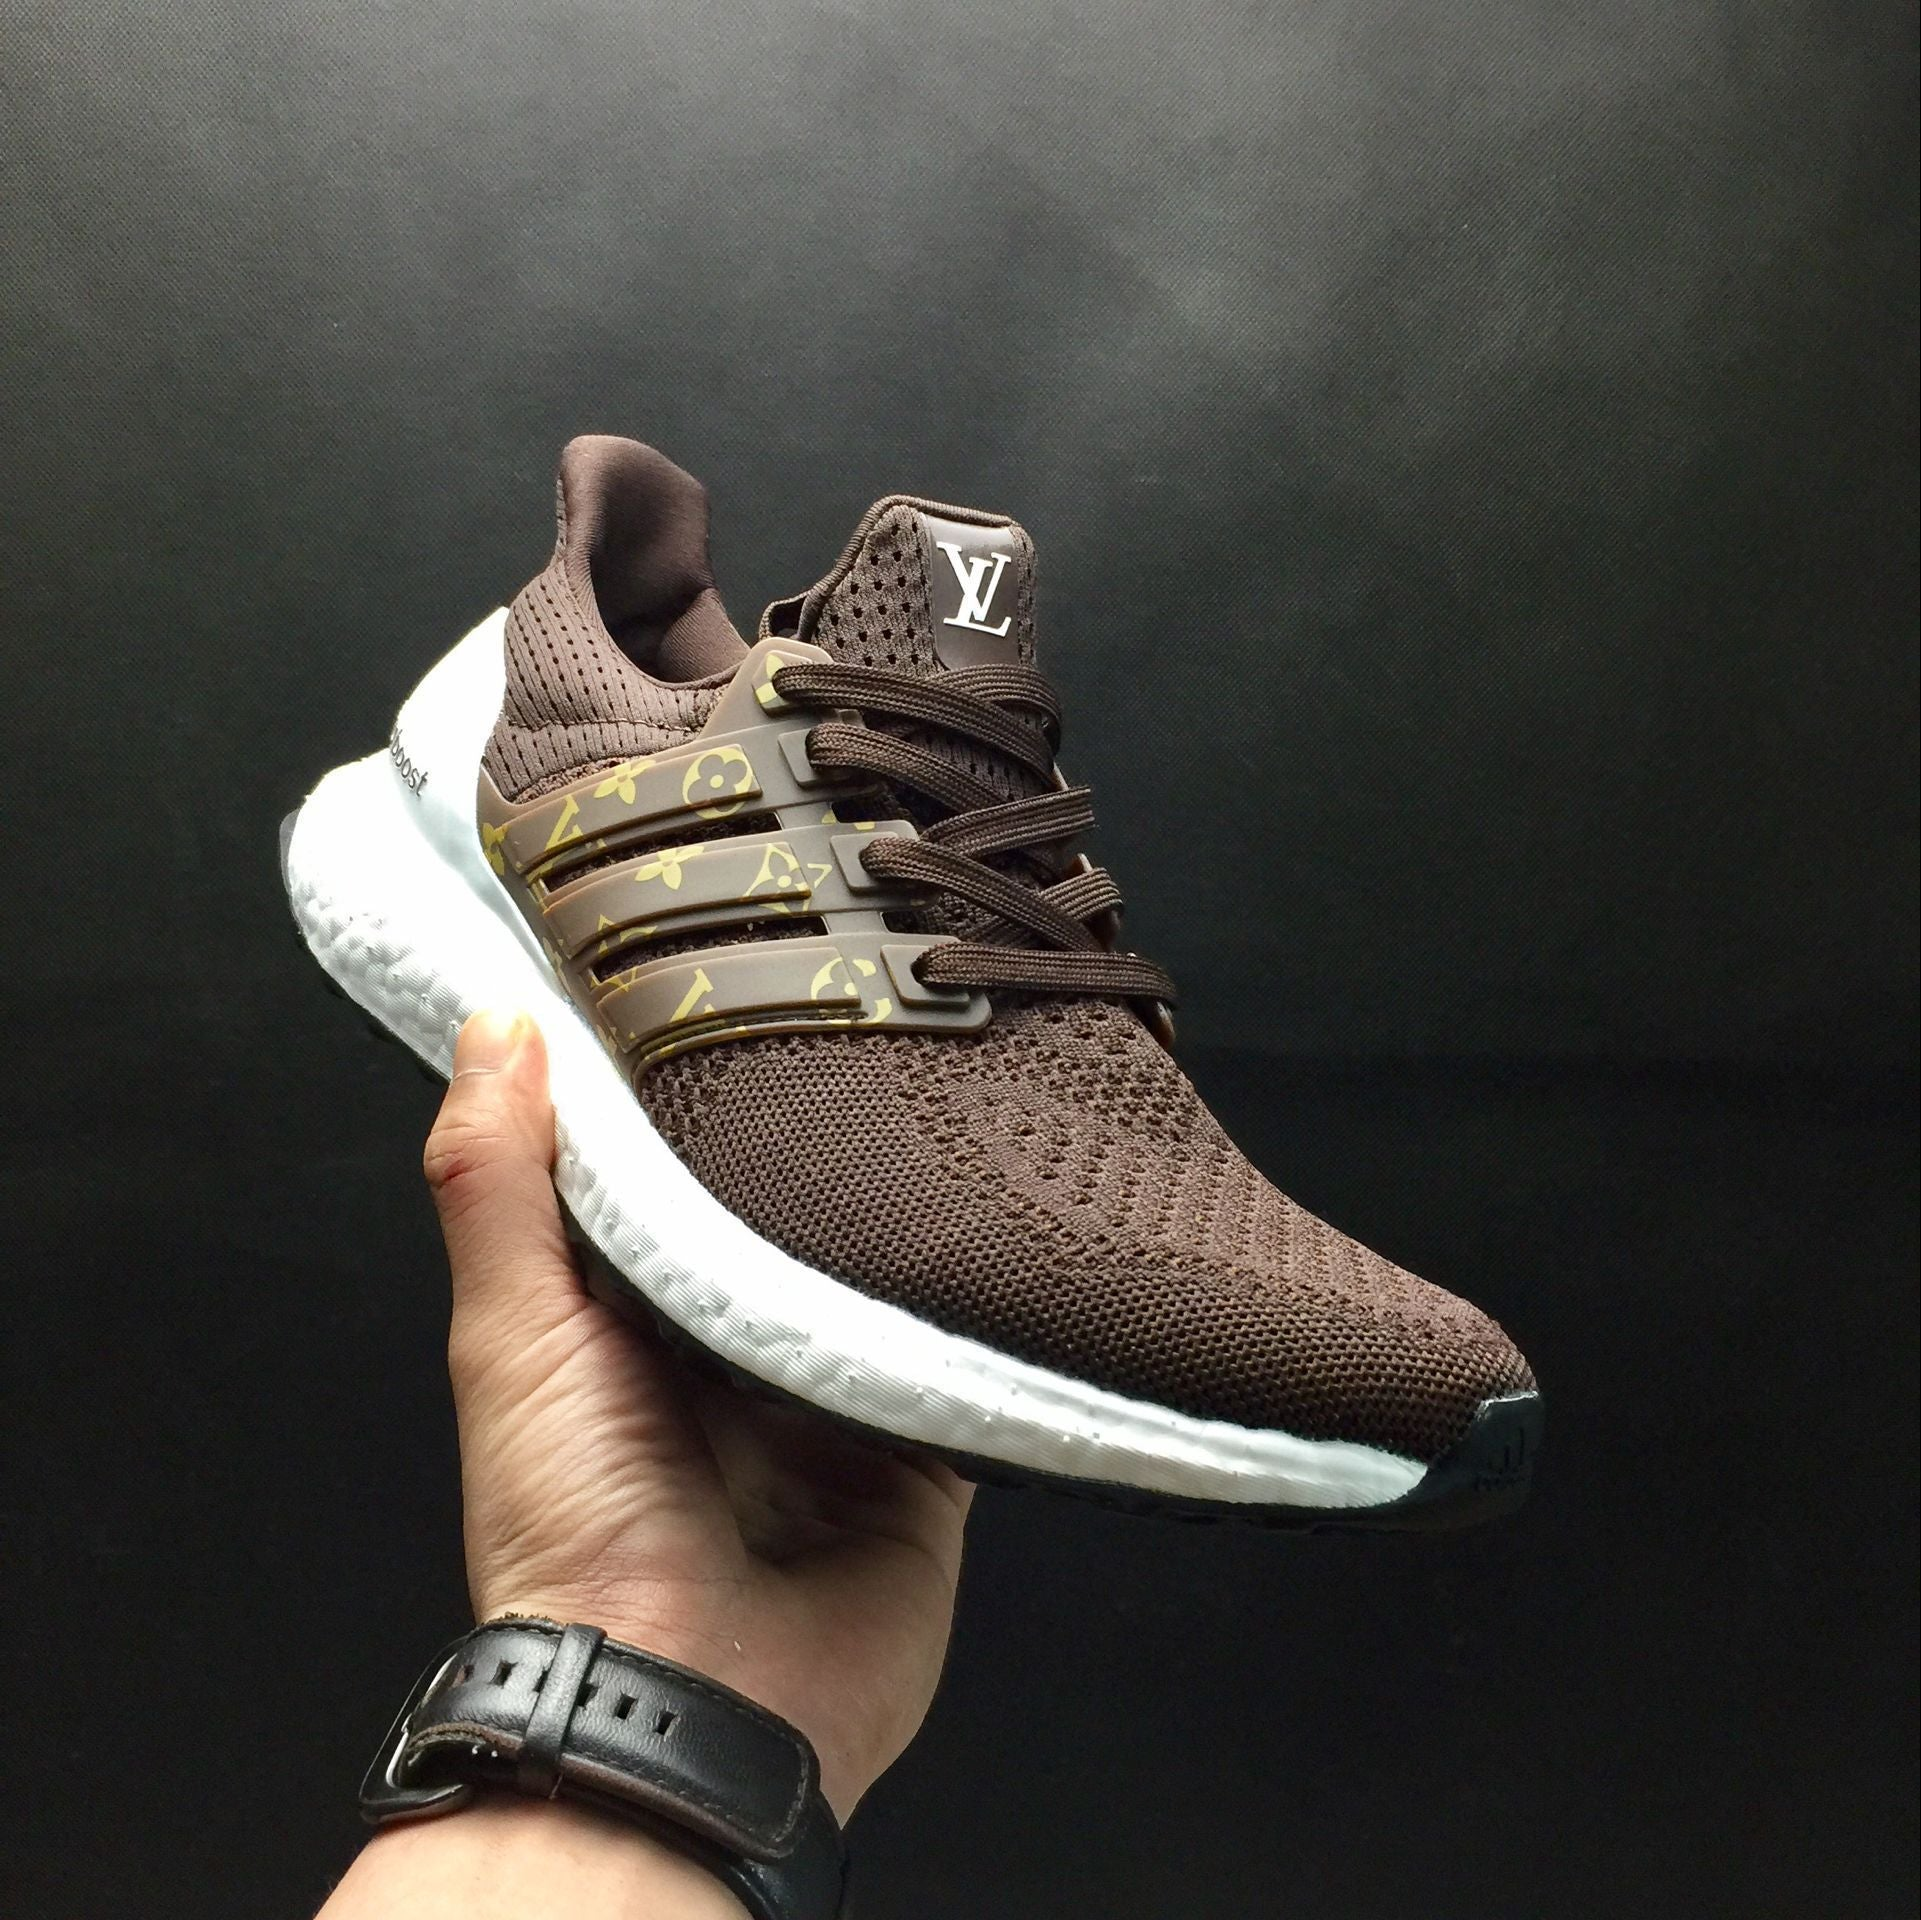 online store d8de9 61f7f Ultra Boost x Lv Brown White Custom - Luxury Store